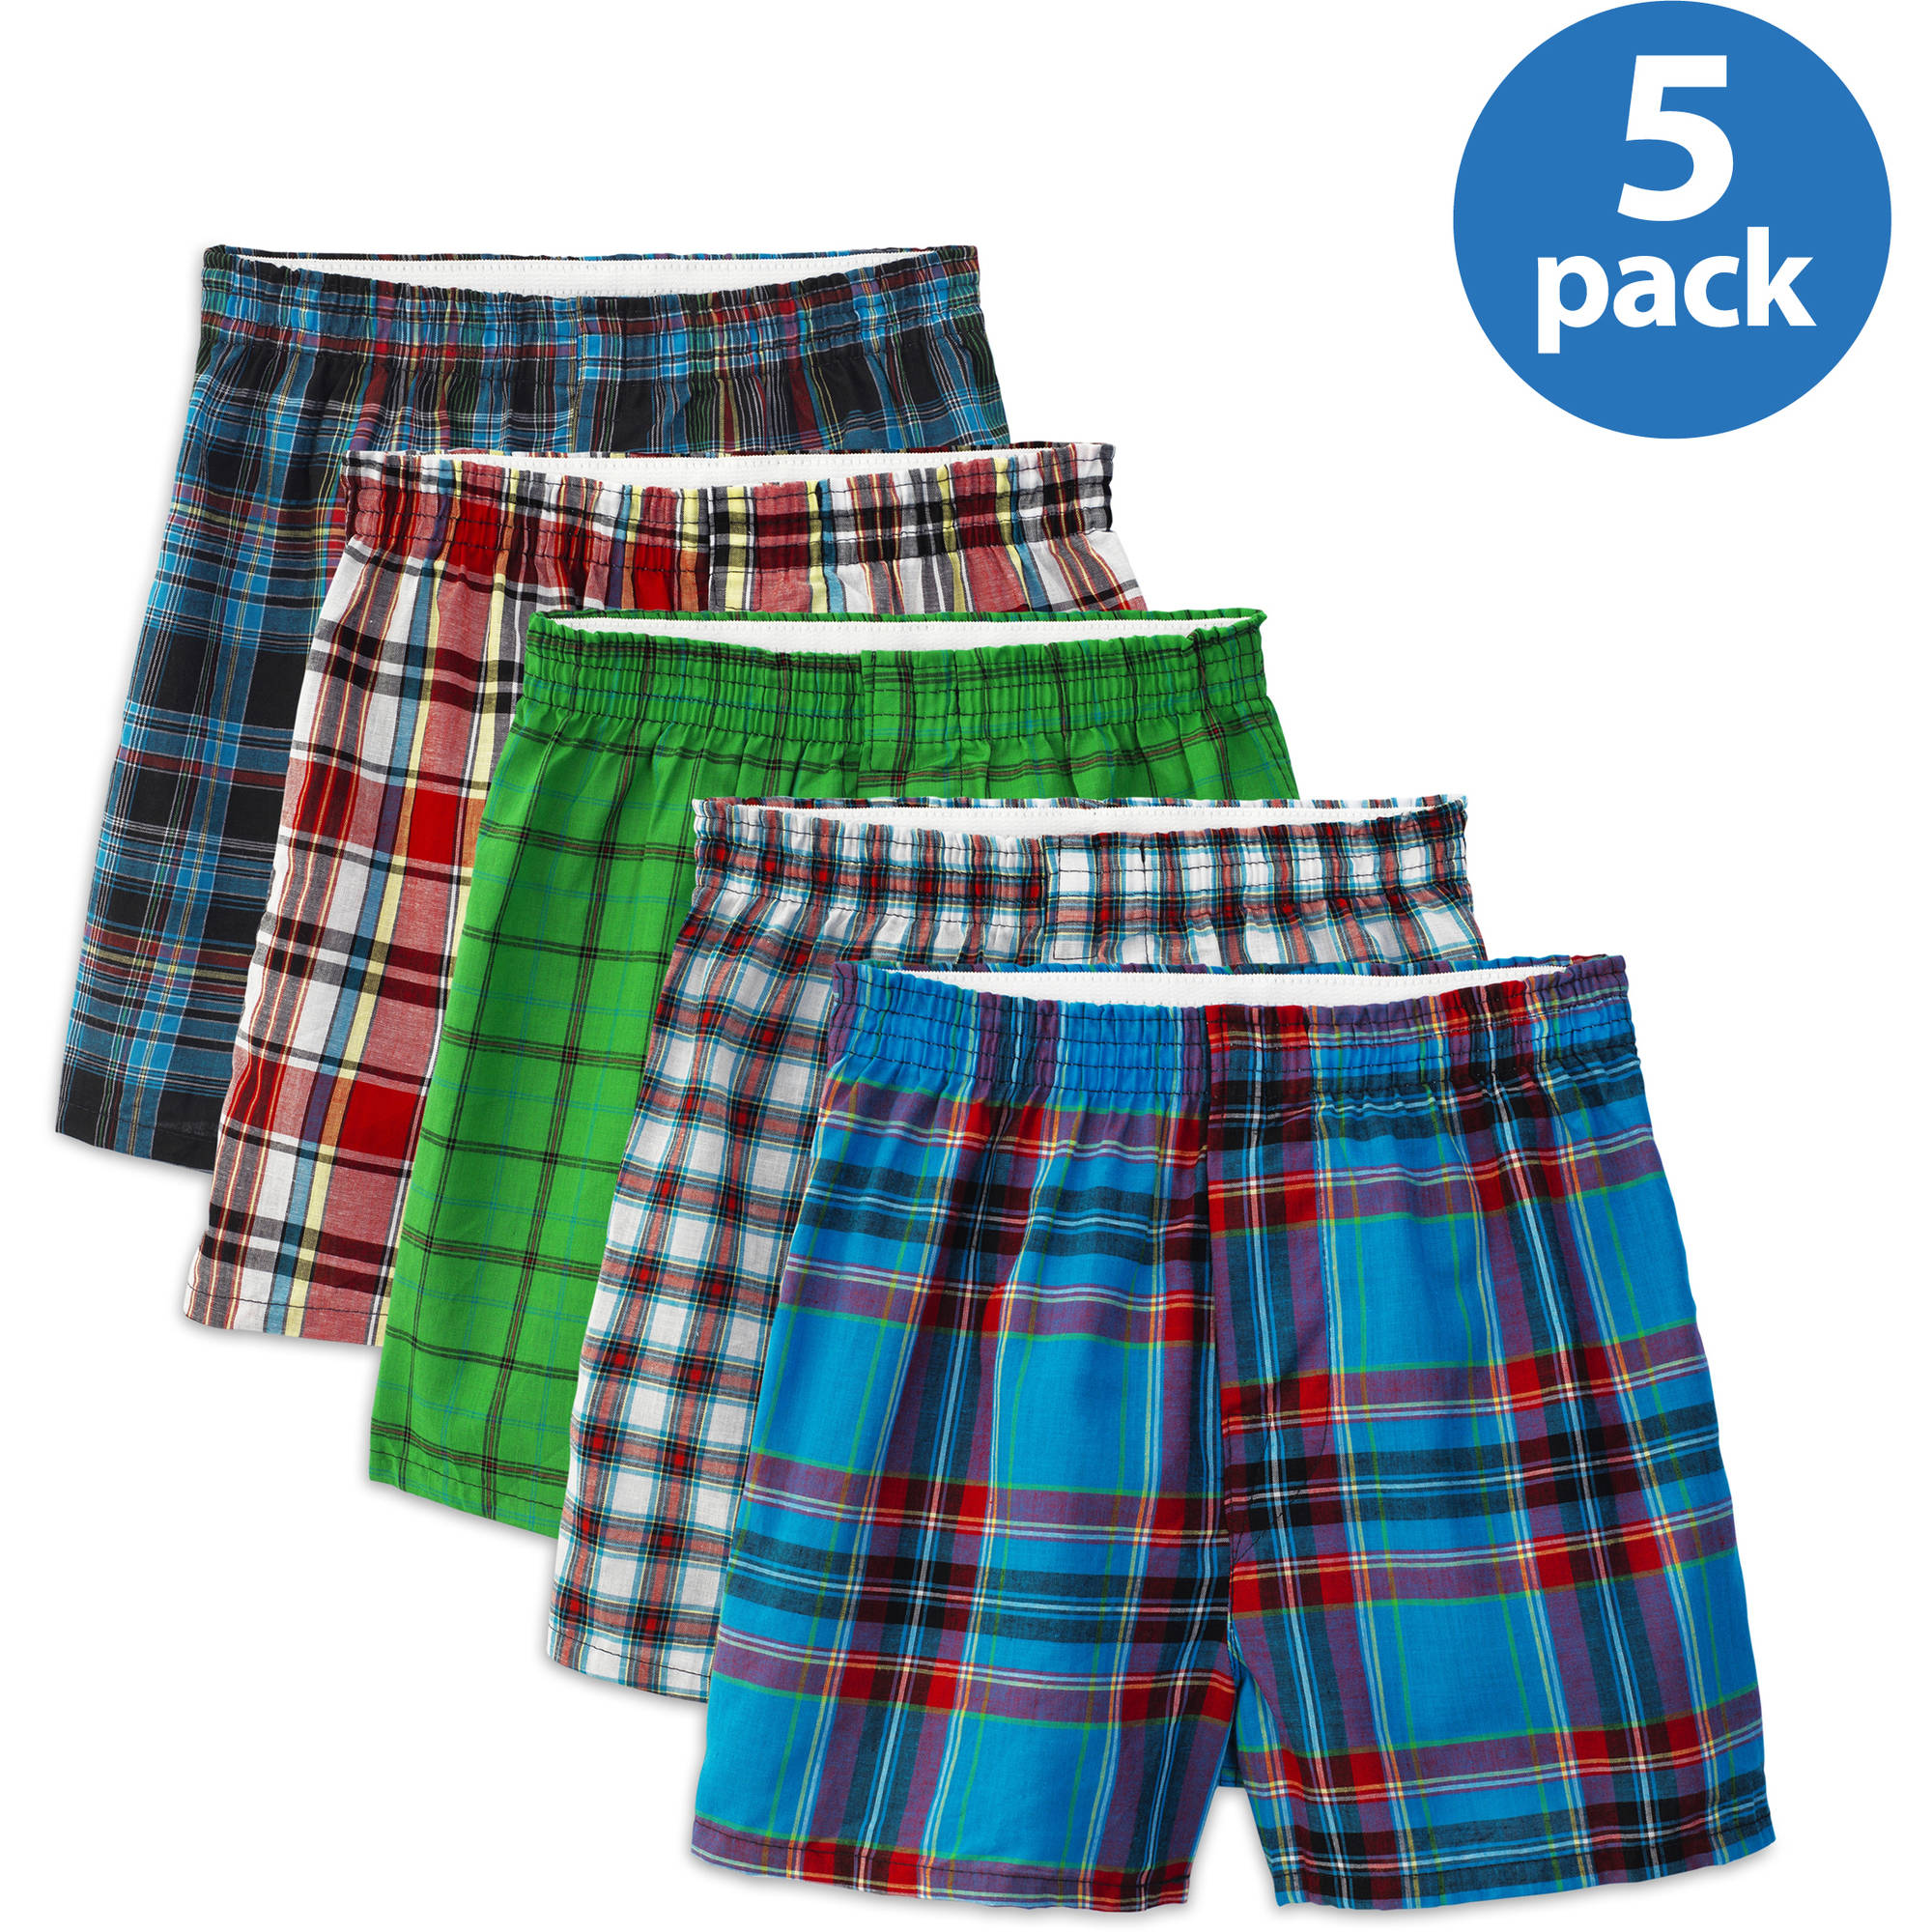 Fruit of the Loom - Boys' Assorted Boxers, 5-Pack